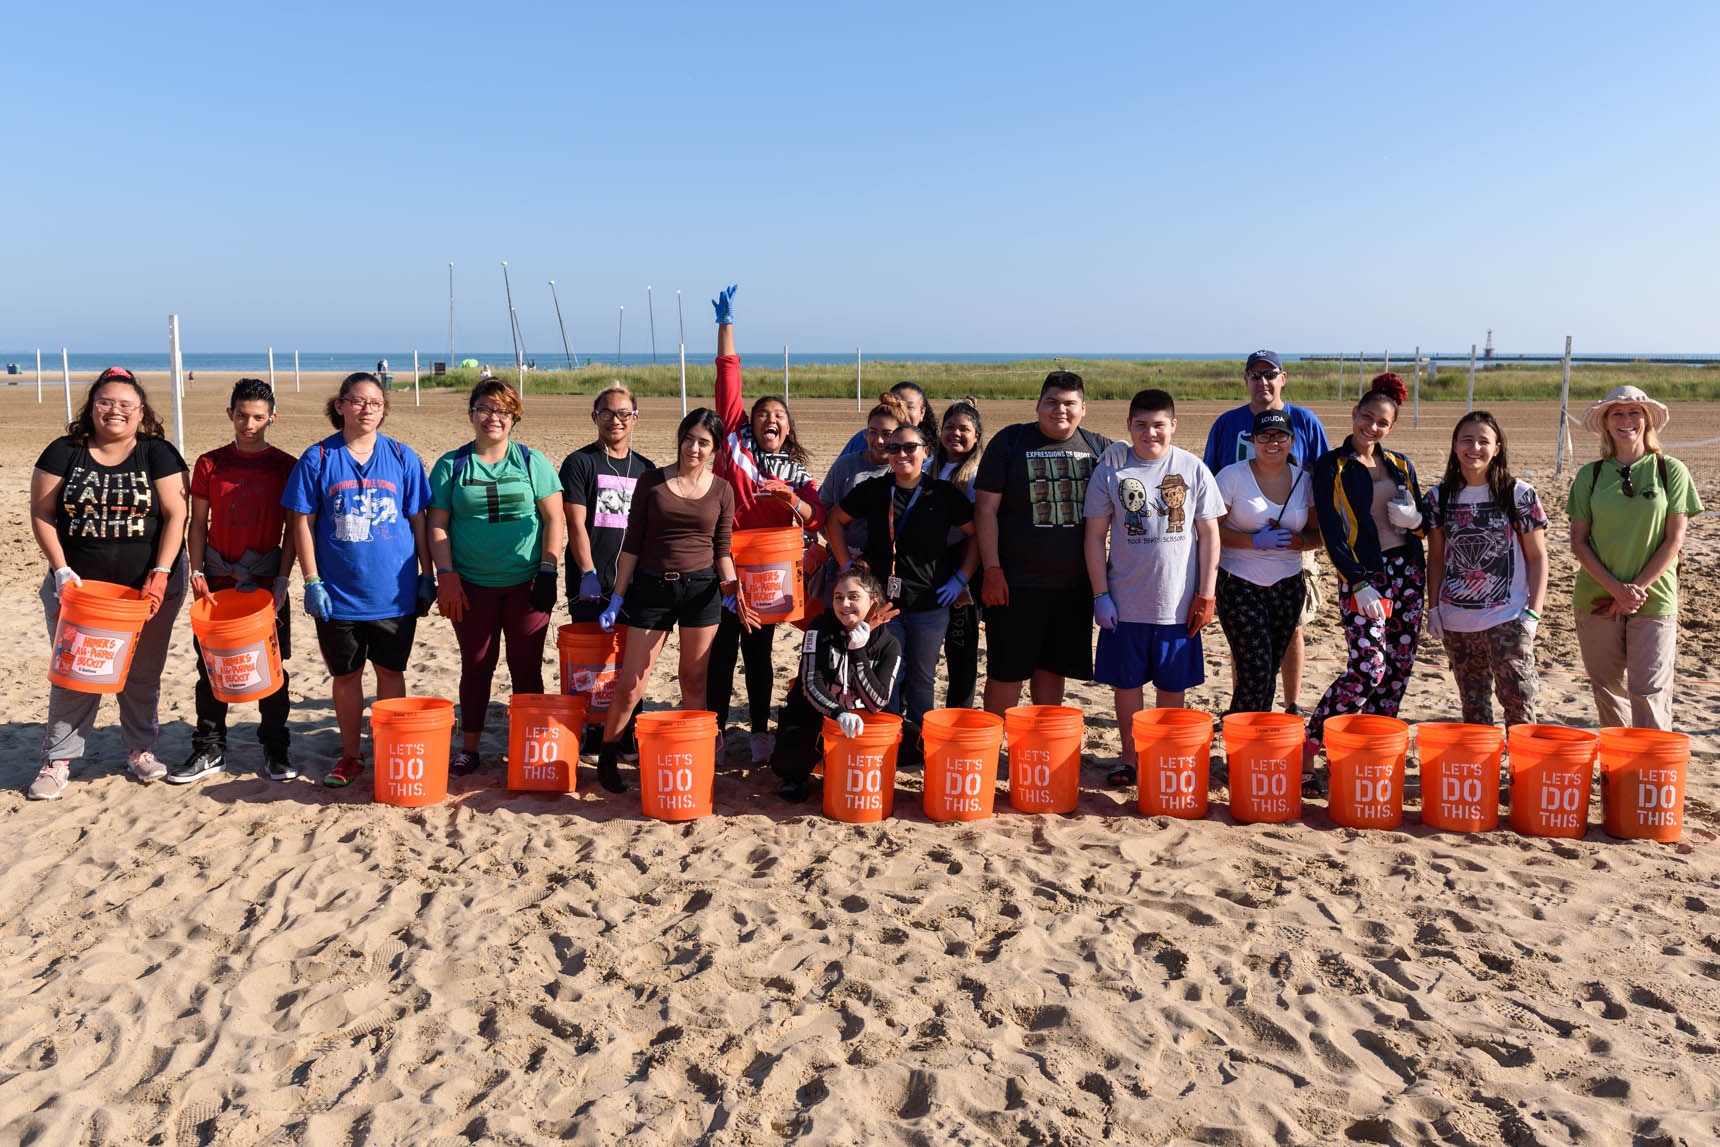 Sierra Club beach cleanup at Montrose Beach in Chicago - Event Photography by Michael Courier